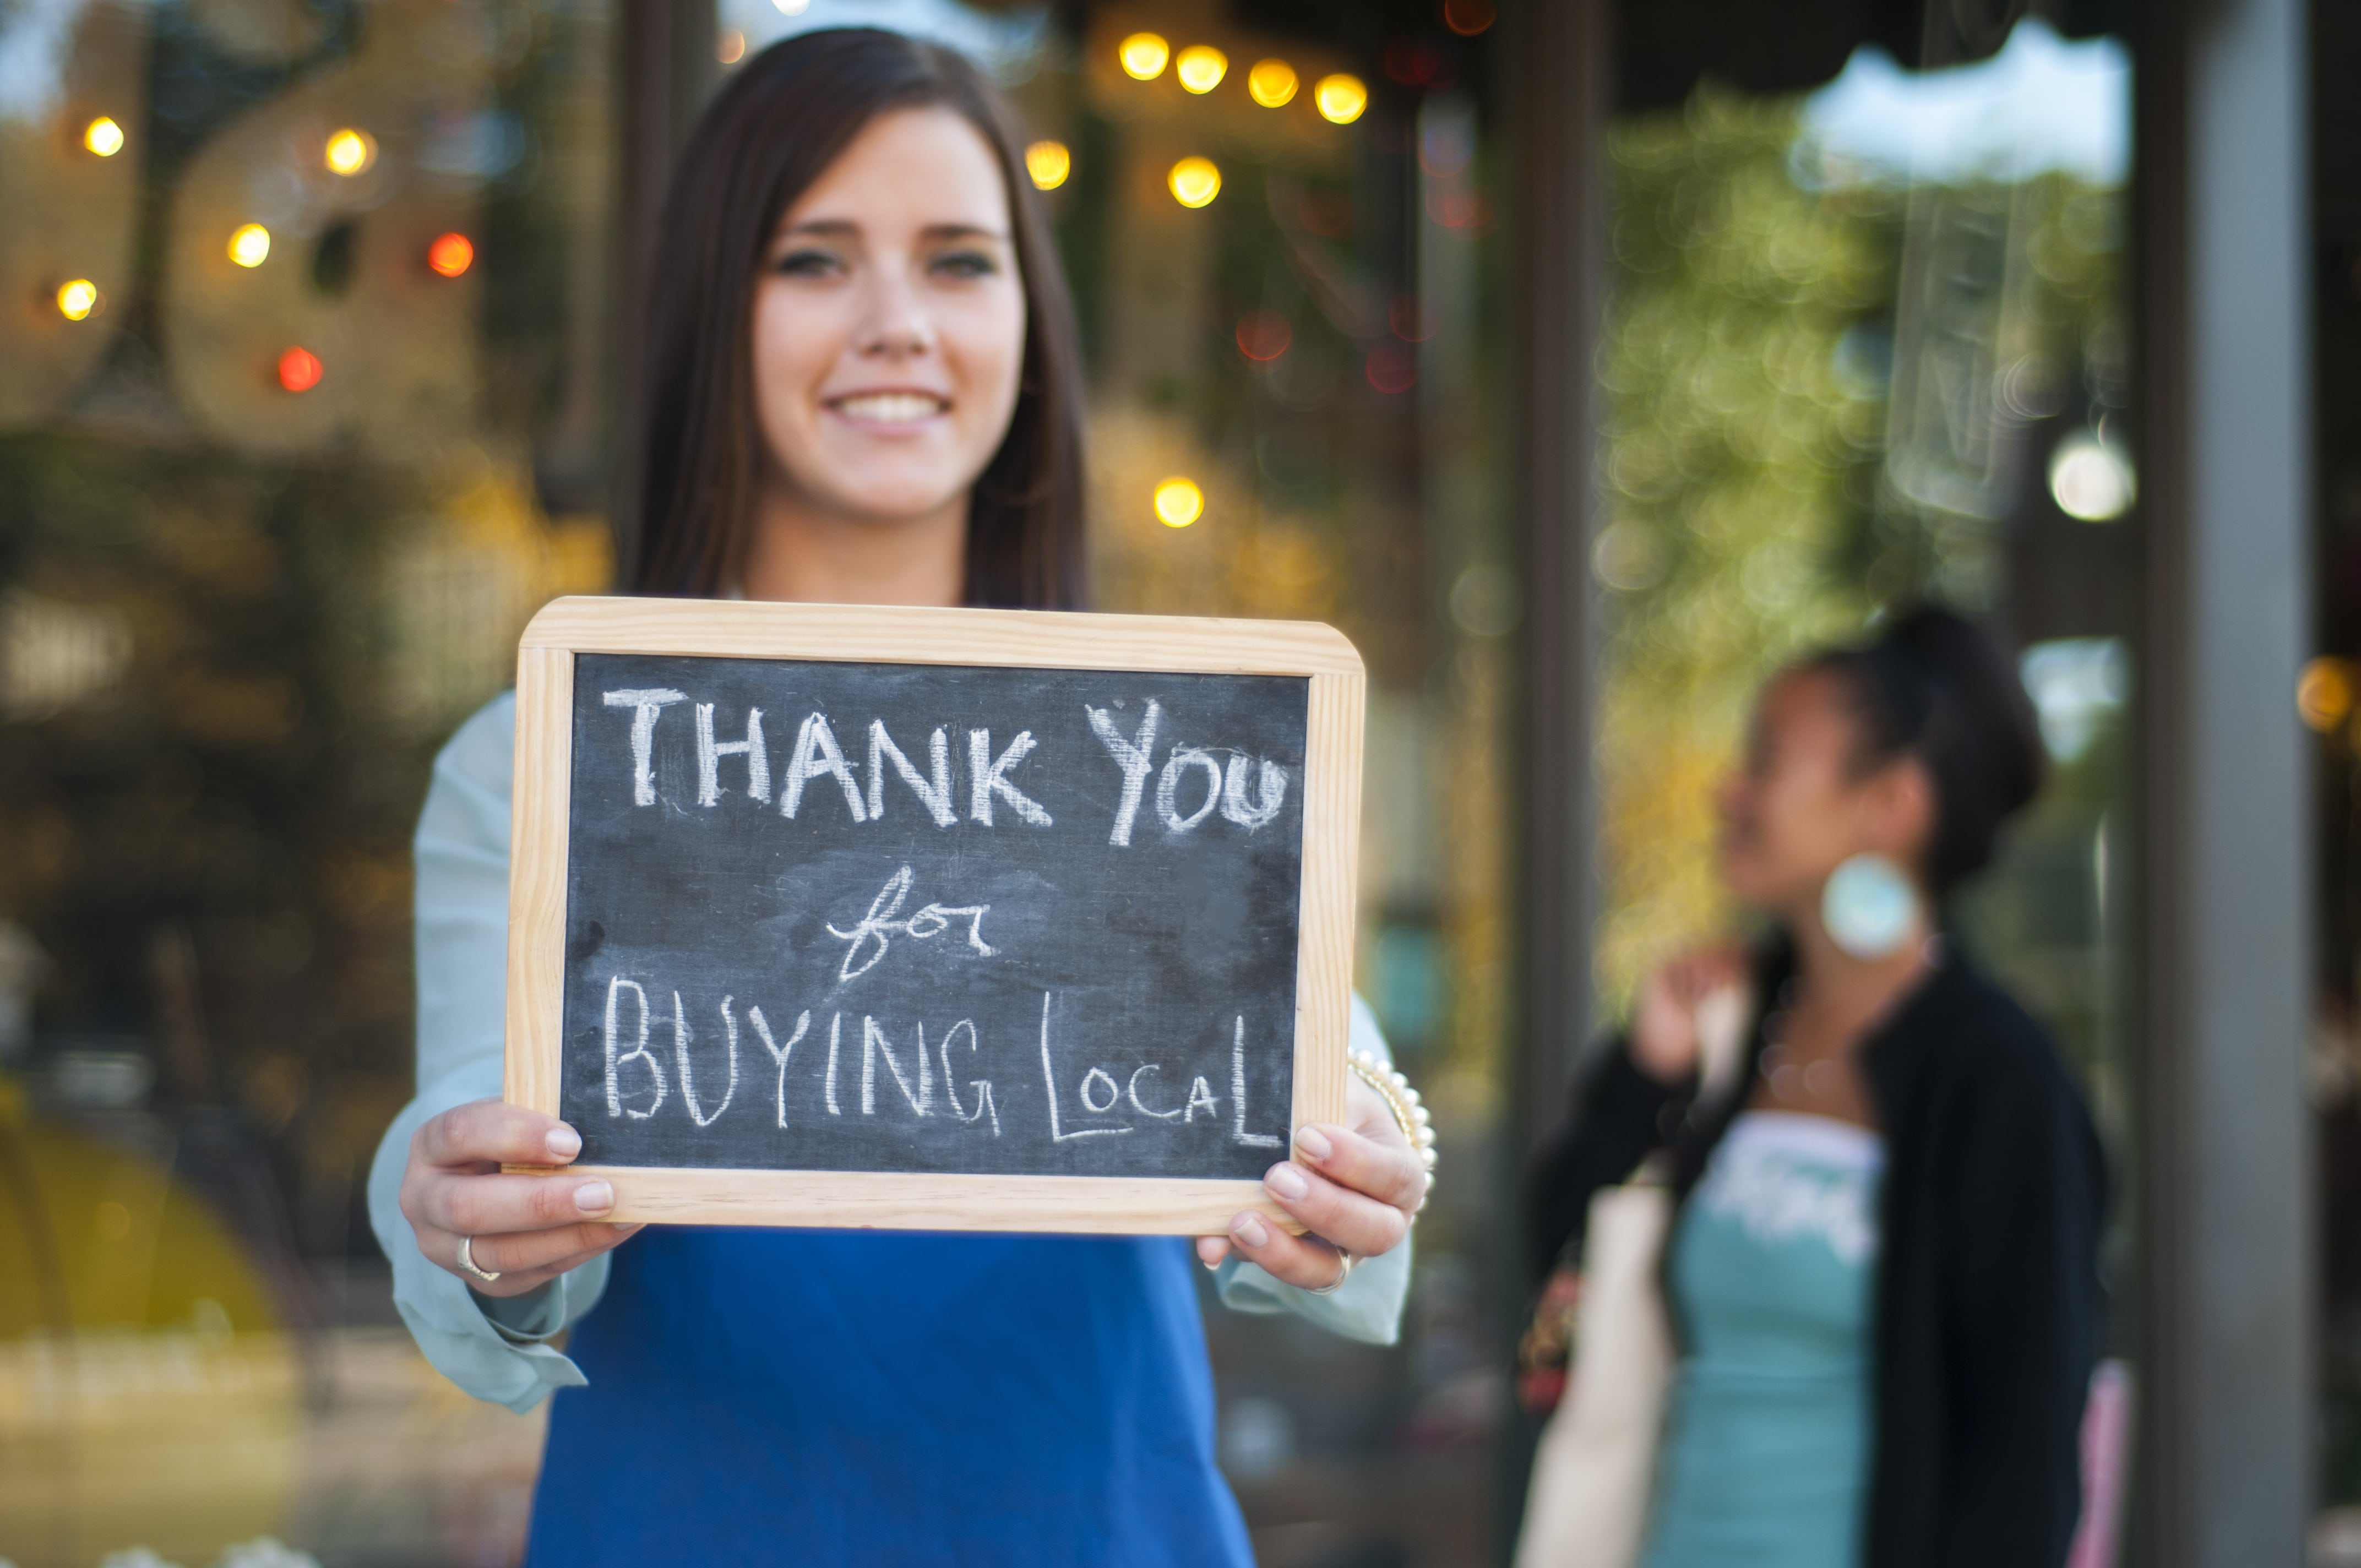 AmTrust Insureds Urge Others to Shop Locally on Small Business Saturday